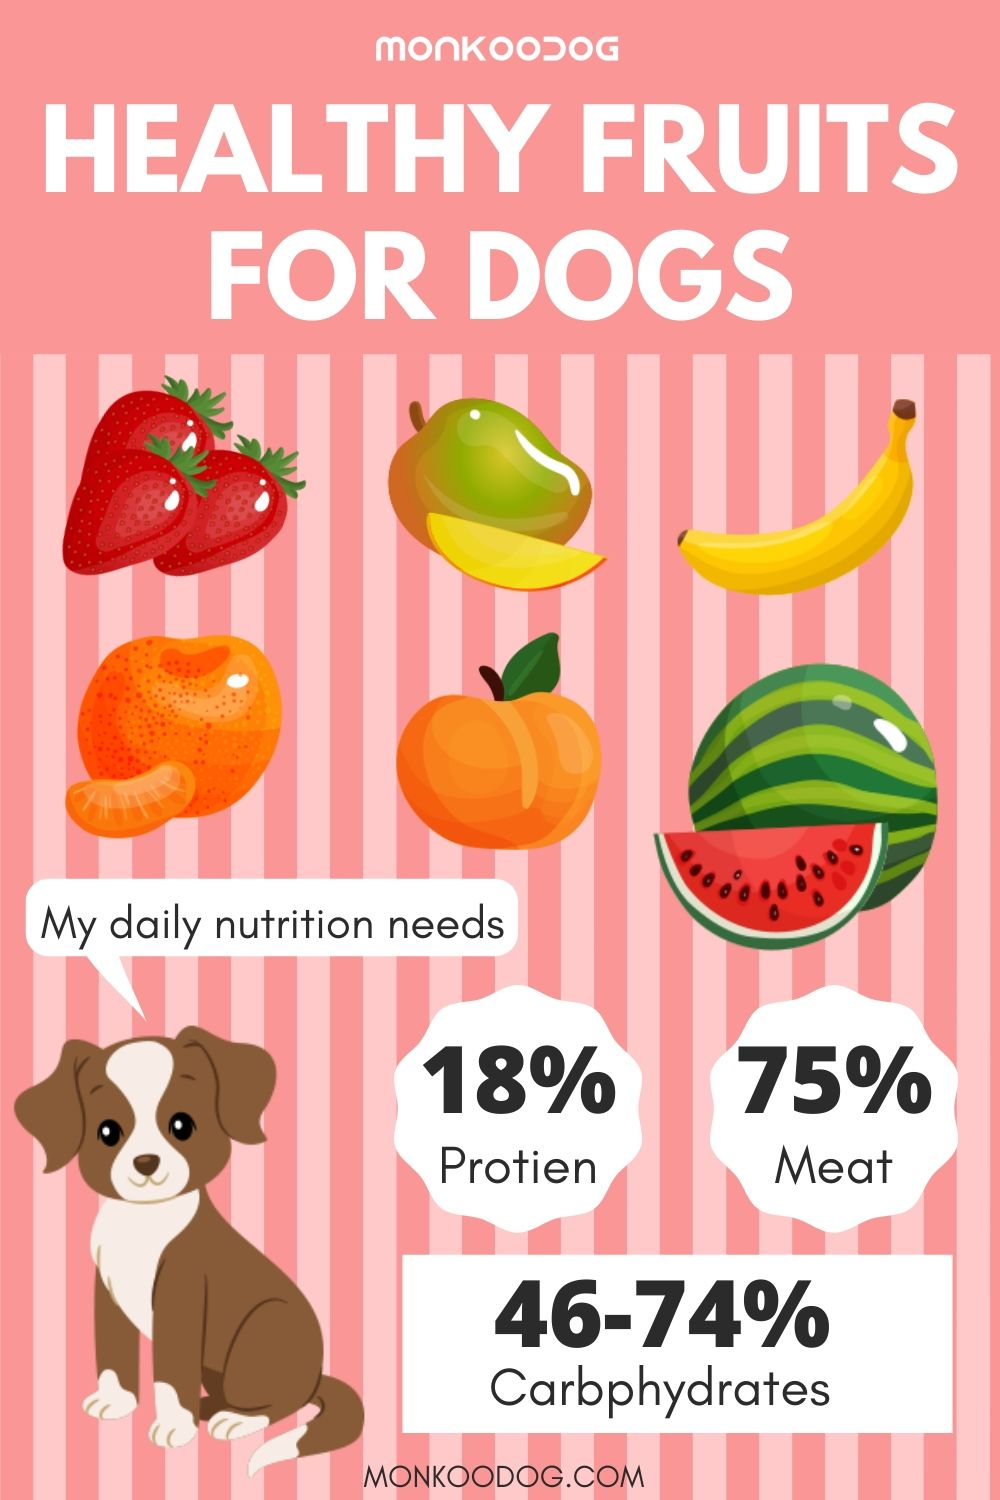 Develop Your Dog's Health With These Healthy Fruits